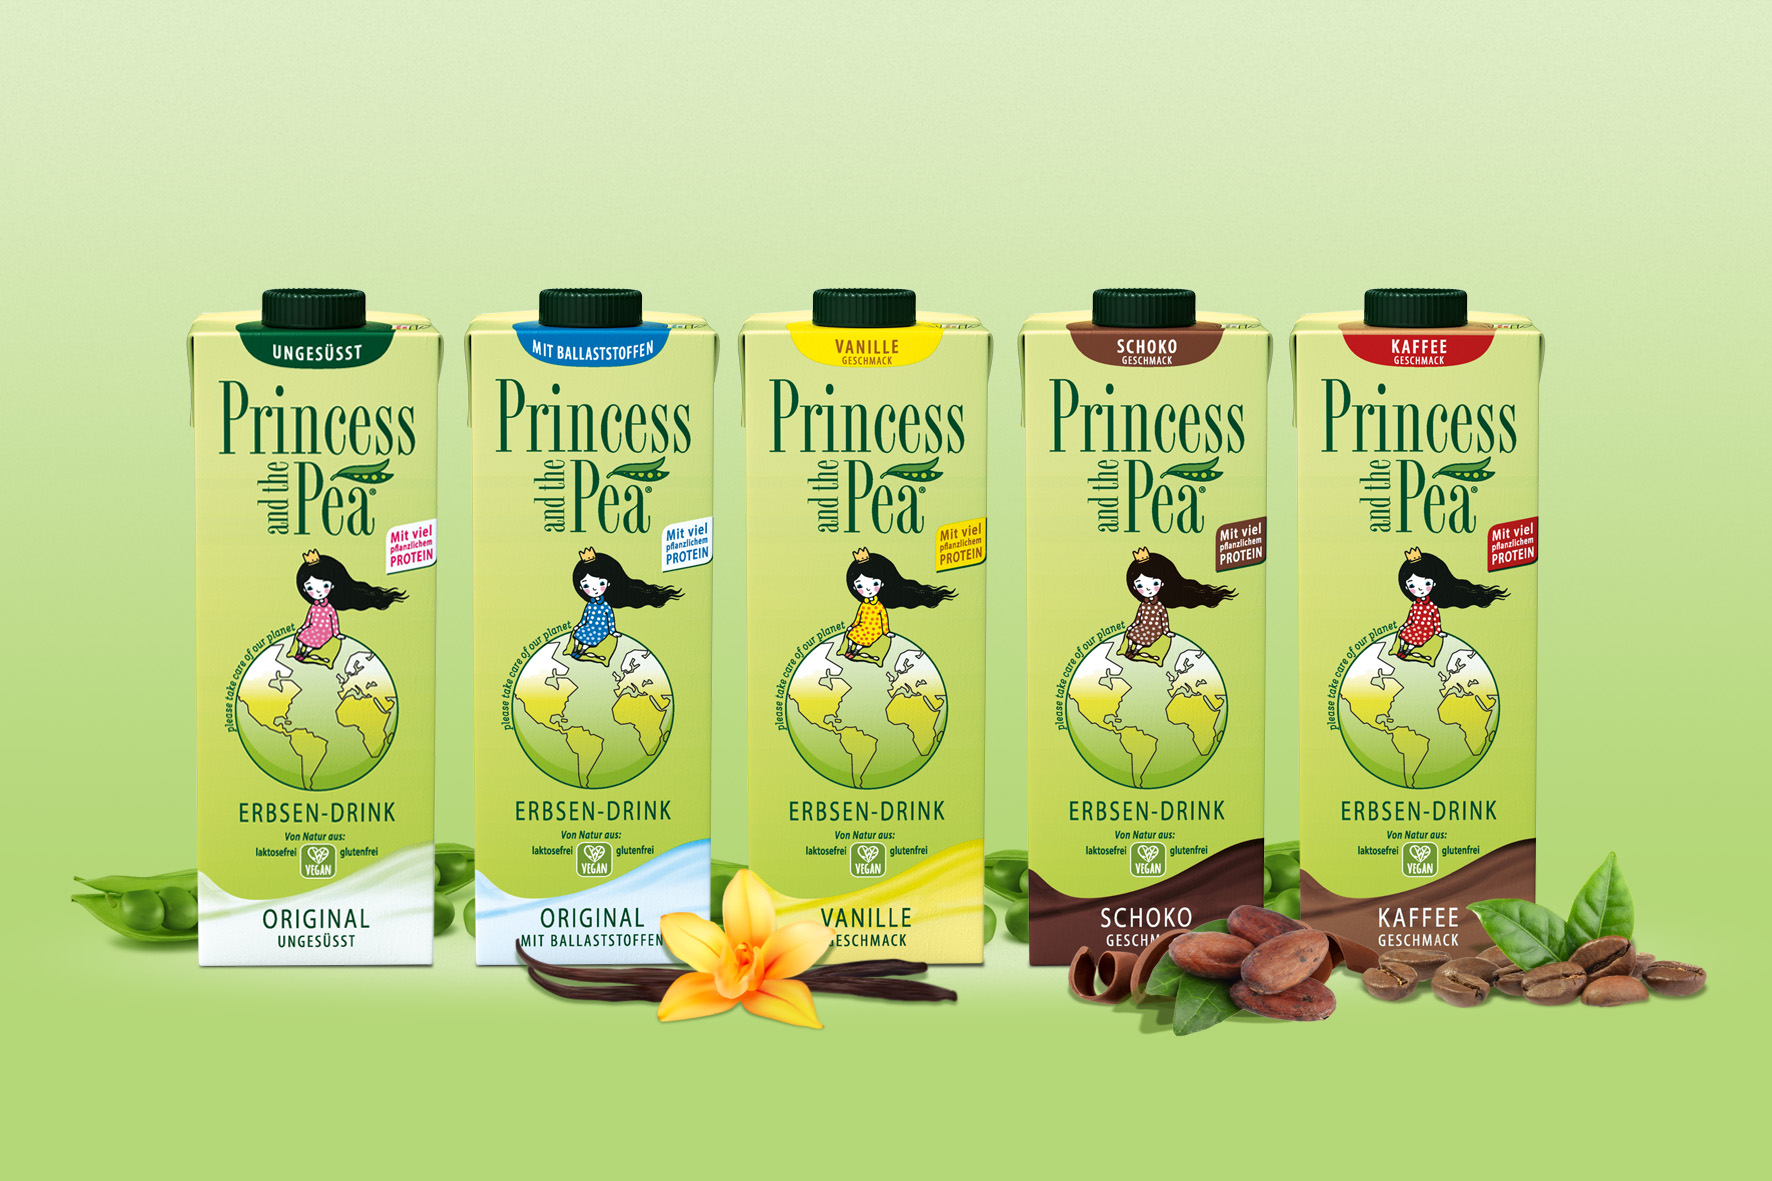 Erbsendrink statt Kuhmilch: PRINCESS AND THE PEA